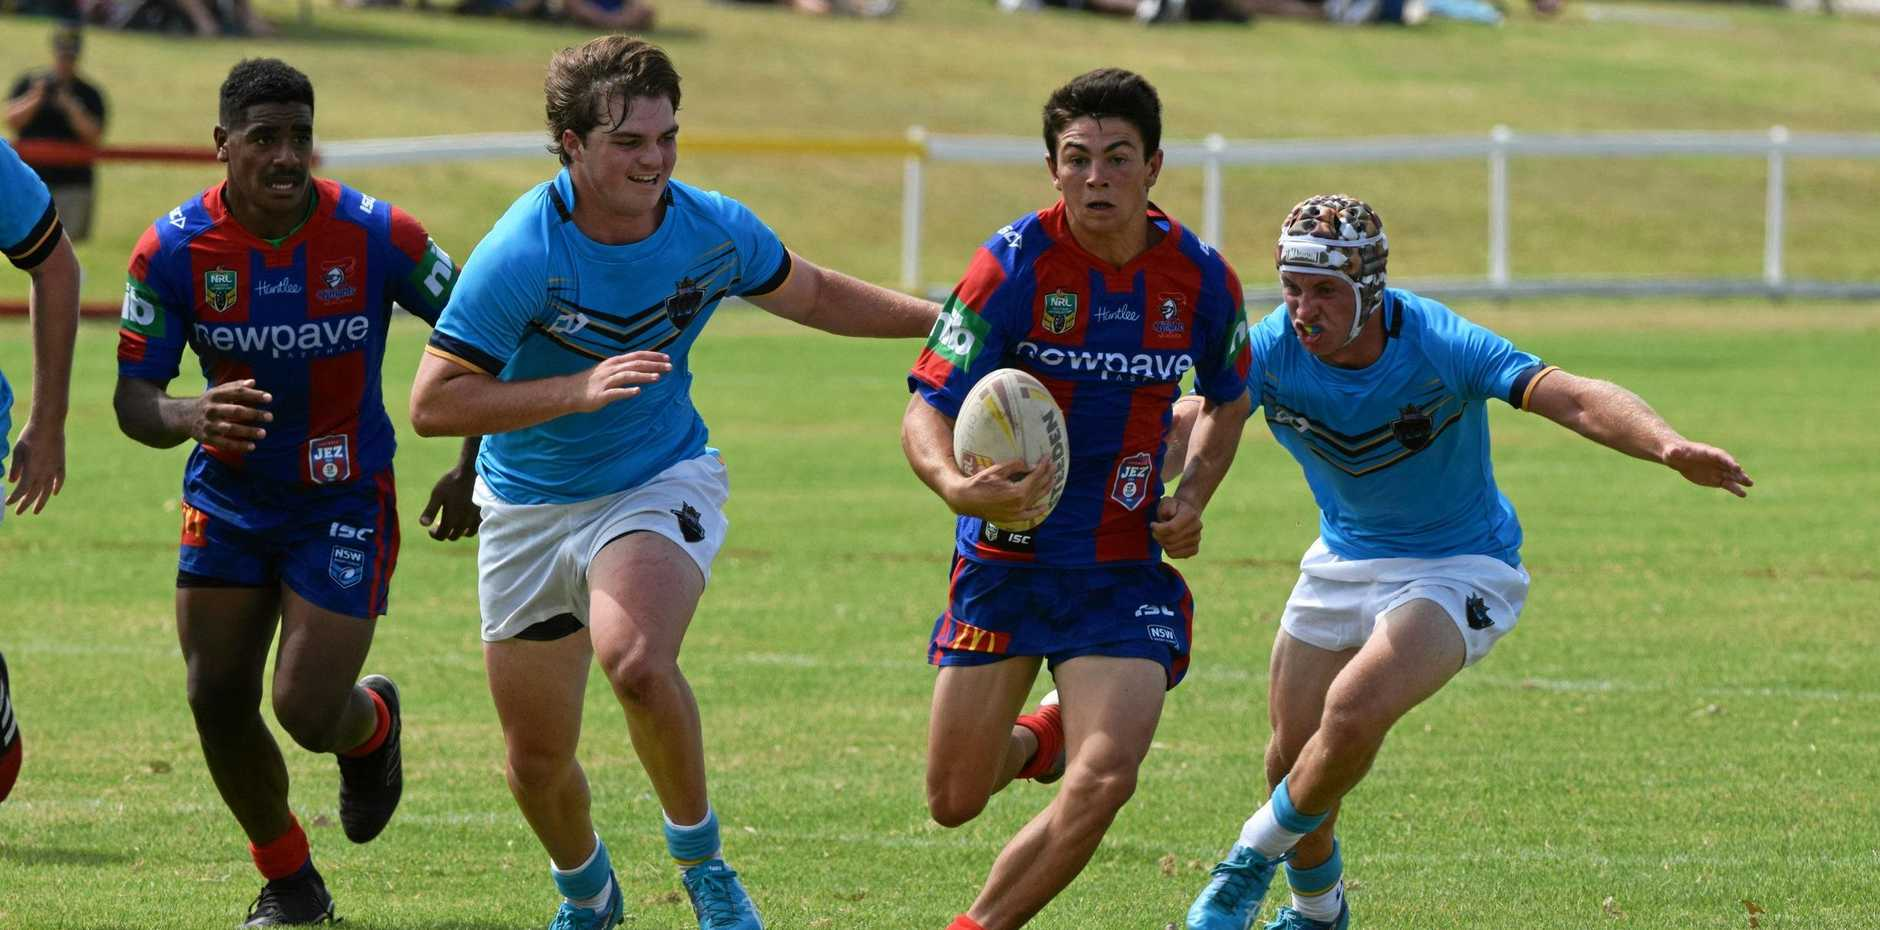 OFF AND GONE: Lachlan Crouch races away for the Newcastle Knights U16s team on Sunday against the Gold Coast Titans in Coffs Harbour.